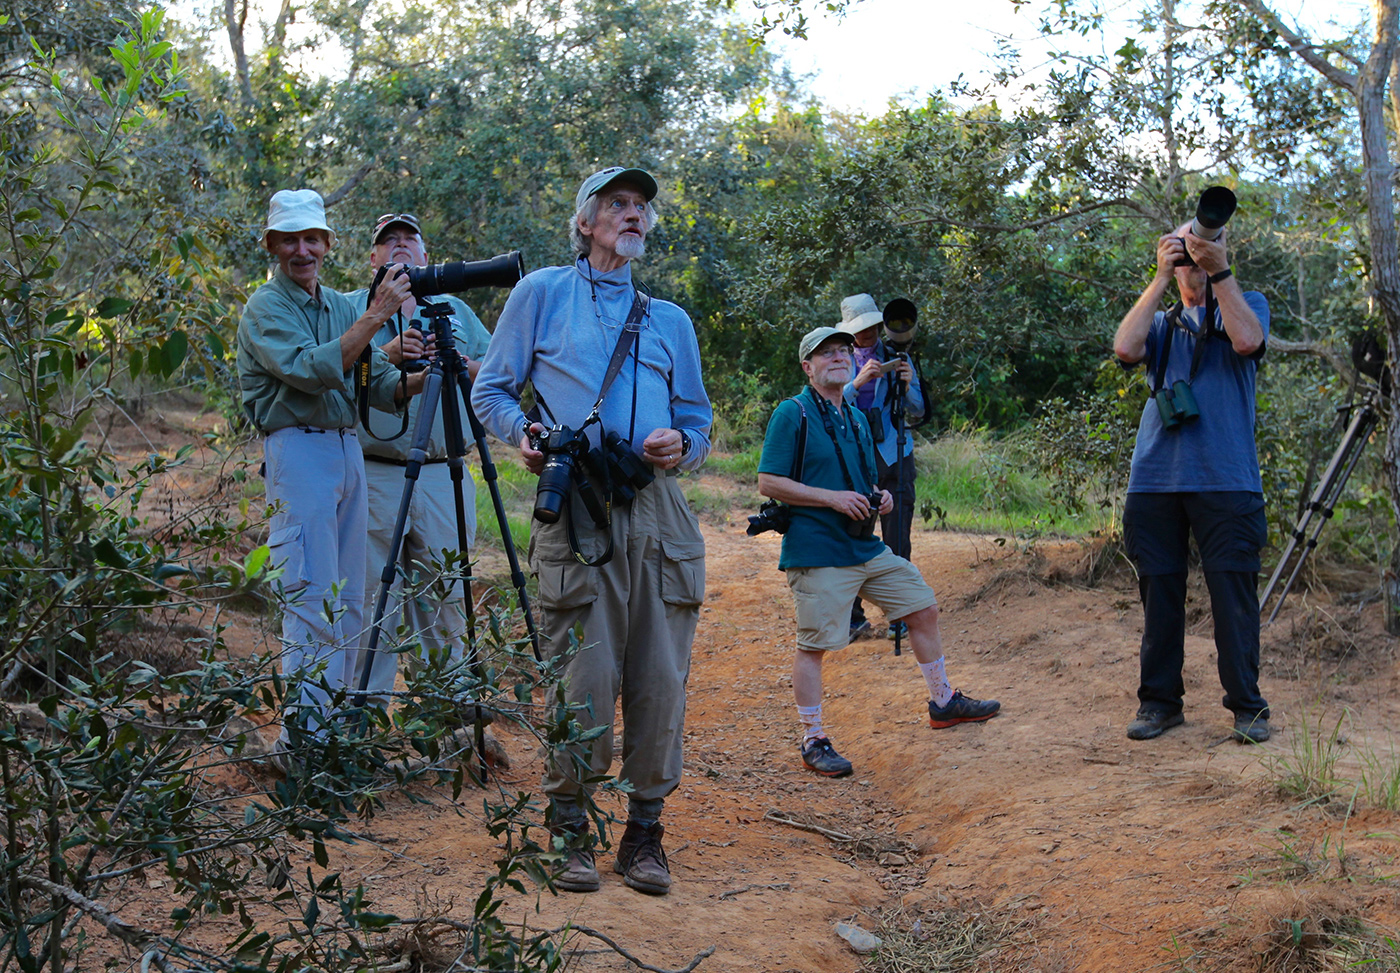 Rob Norton, third from left, leads a group of birders in search of warblers and other small birds in Viñales, Cuba. Julia Schmalz